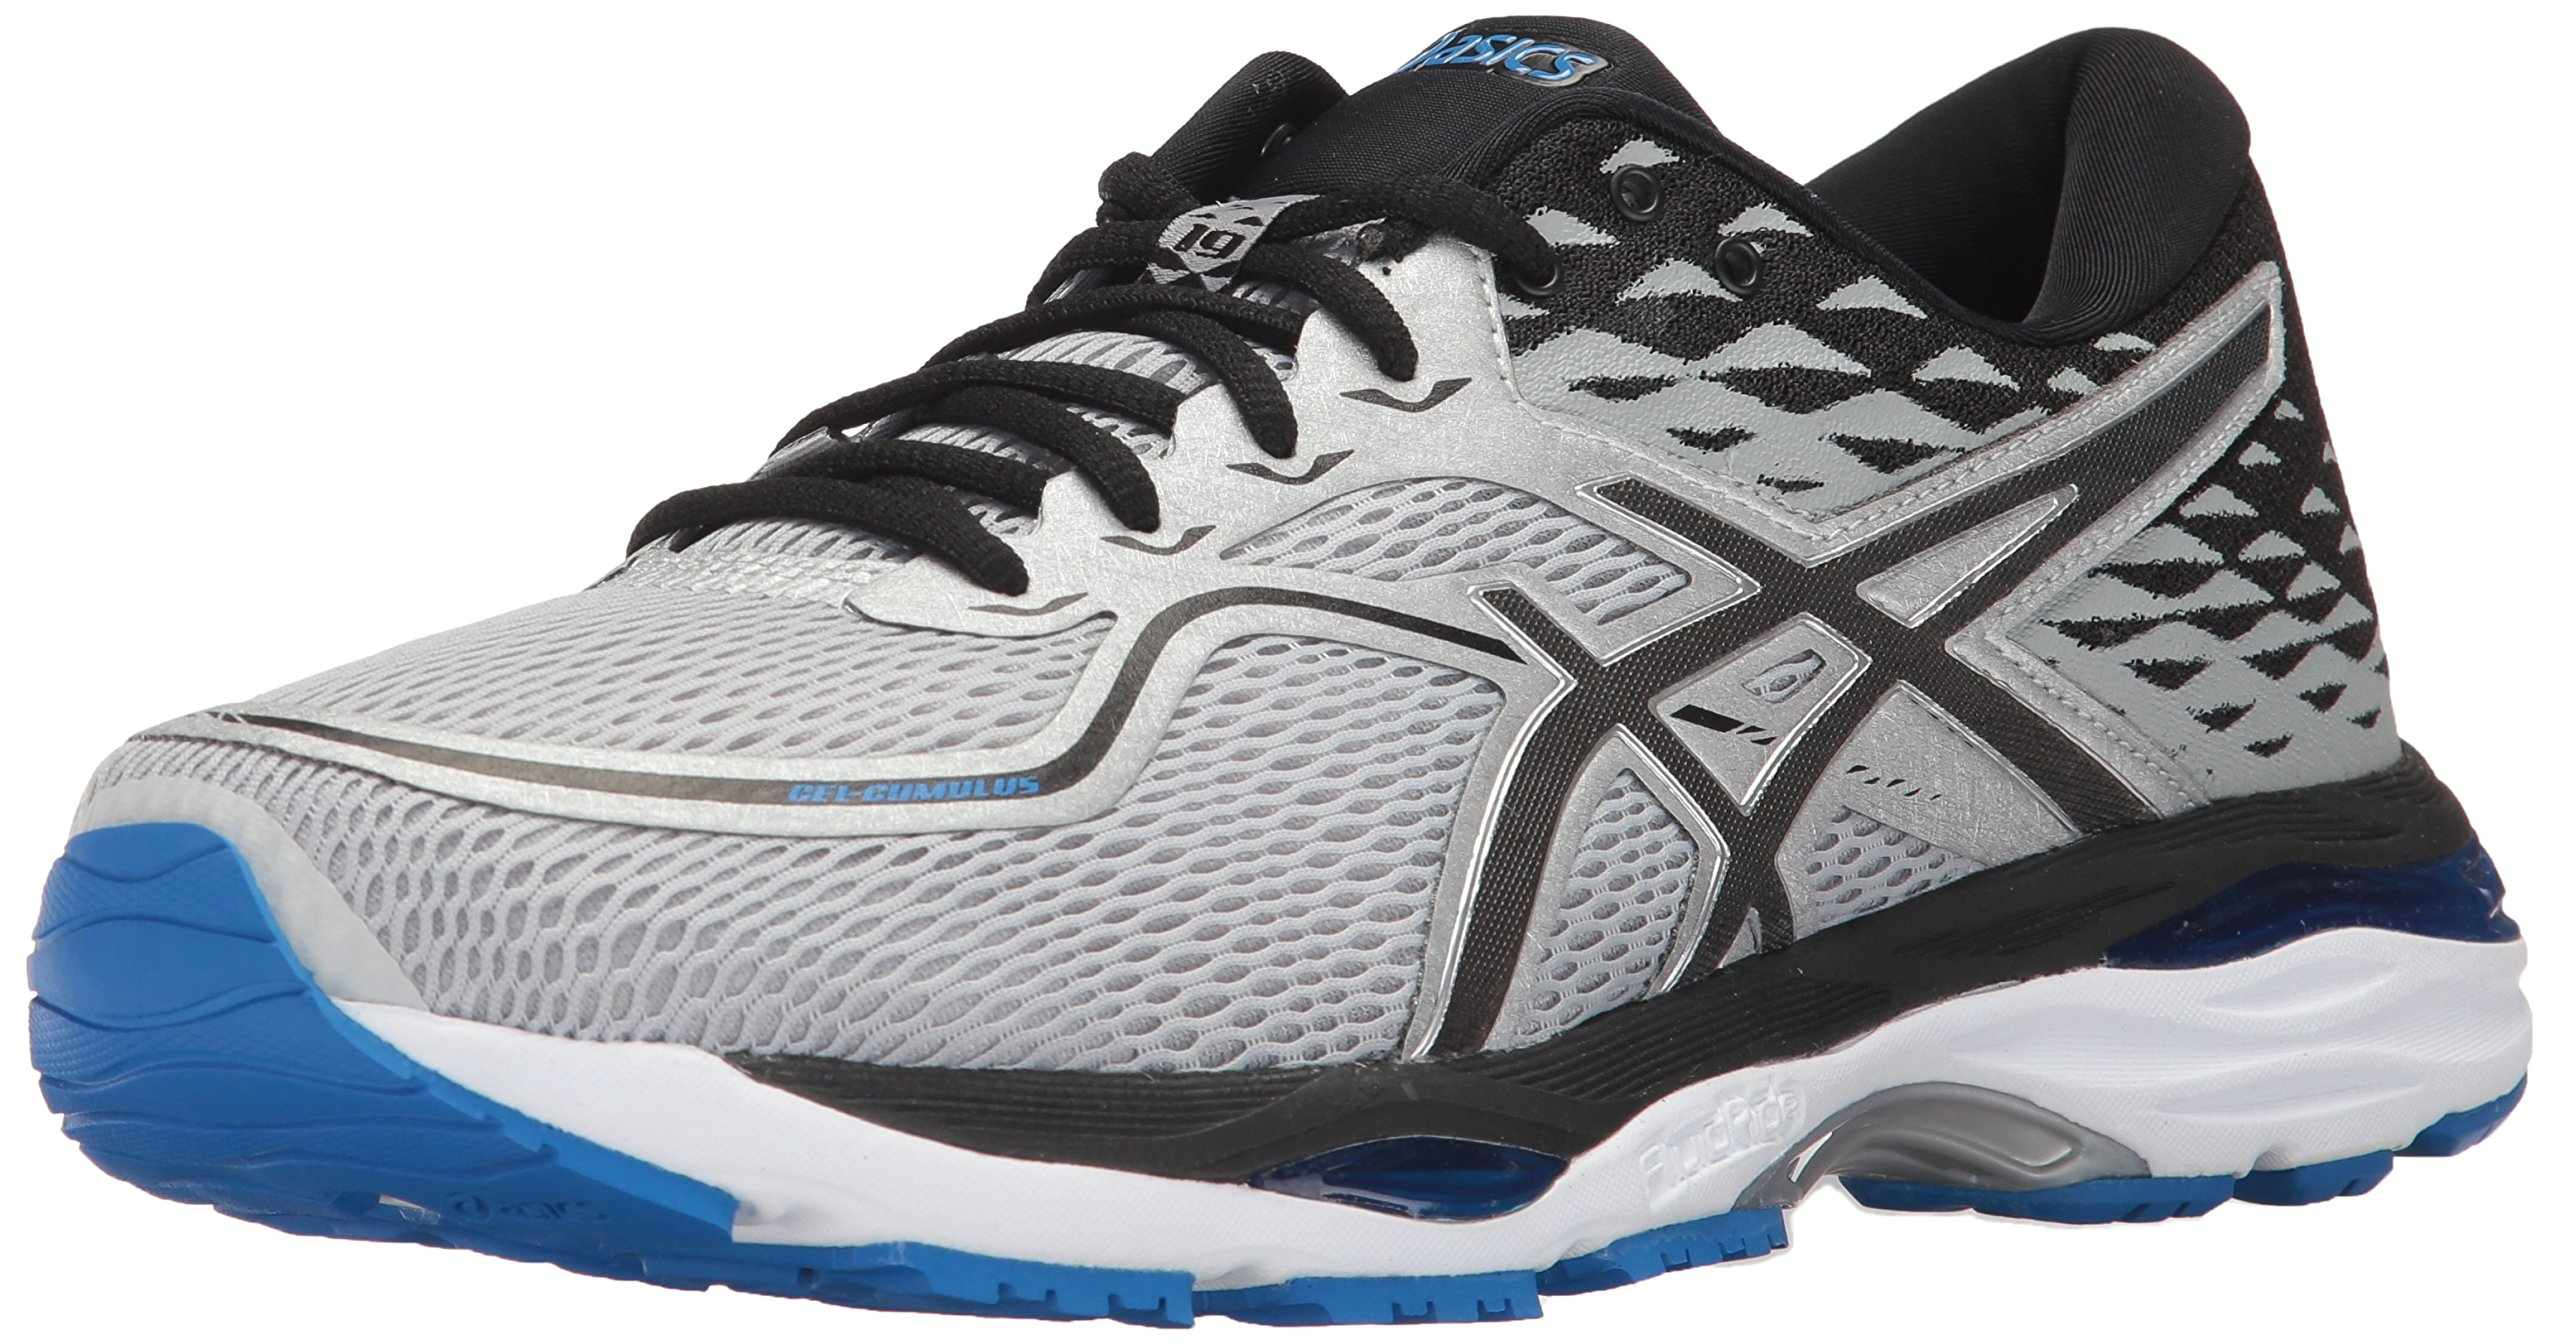 ASICS Men's Gel-Cumulus 19 Running Shoe, Grey/Black/Directoire Blue, 10.5 Medium US by ASICS